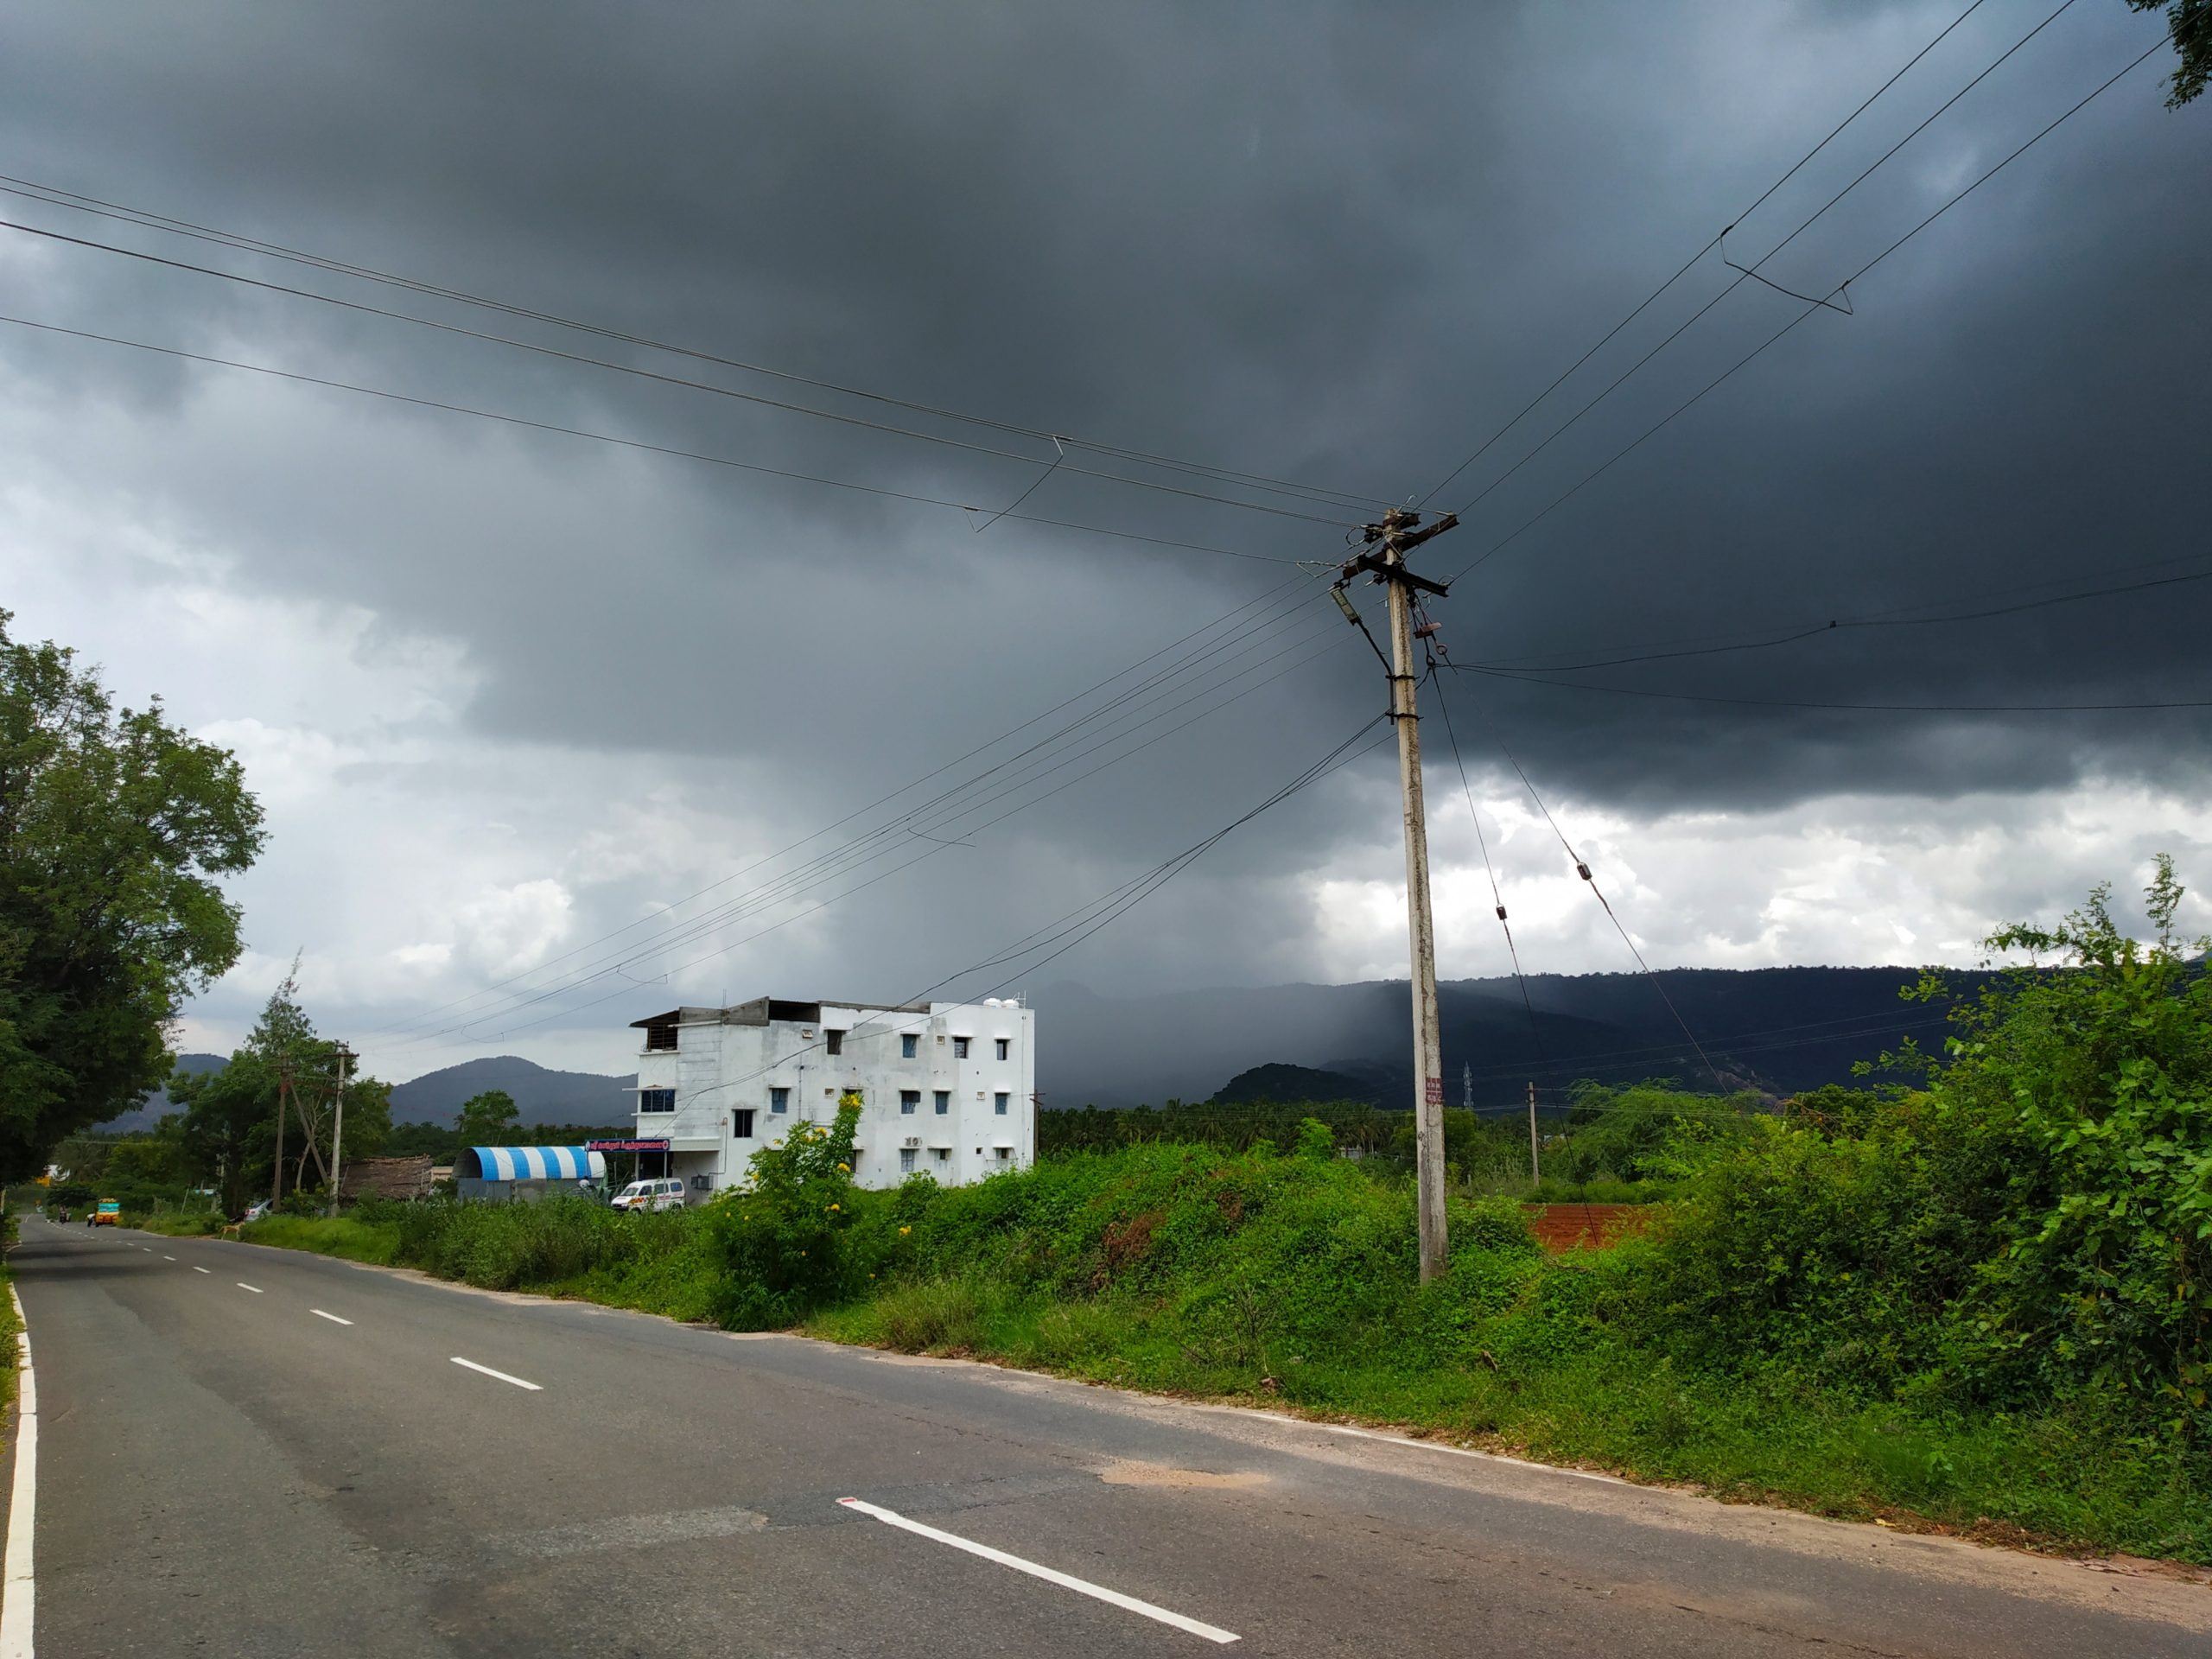 Cloudy sky and a road